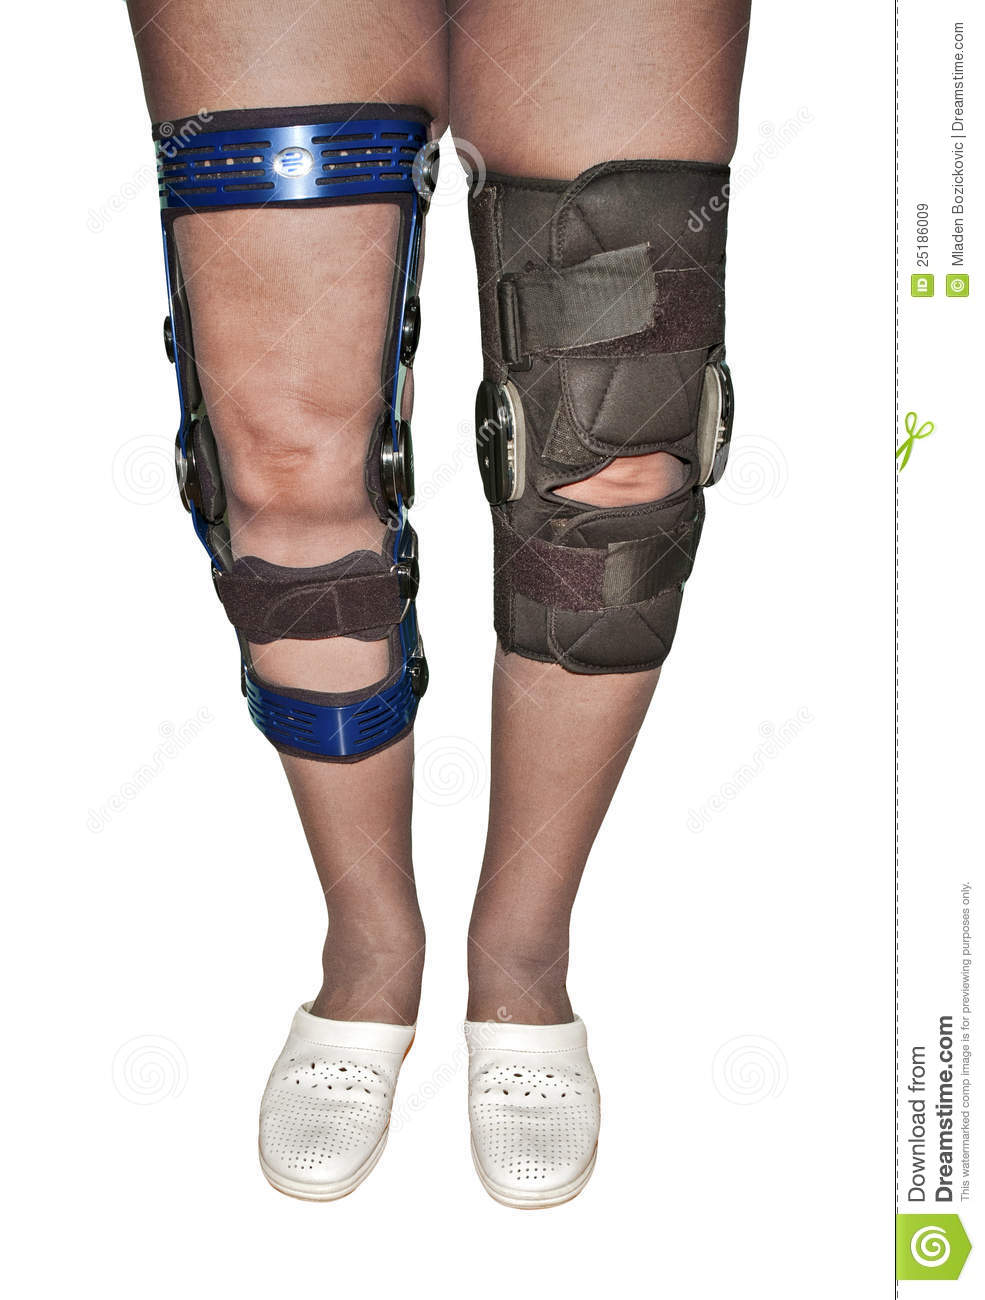 Knee Braces Royalty Free Stock Images - Image: 25186009